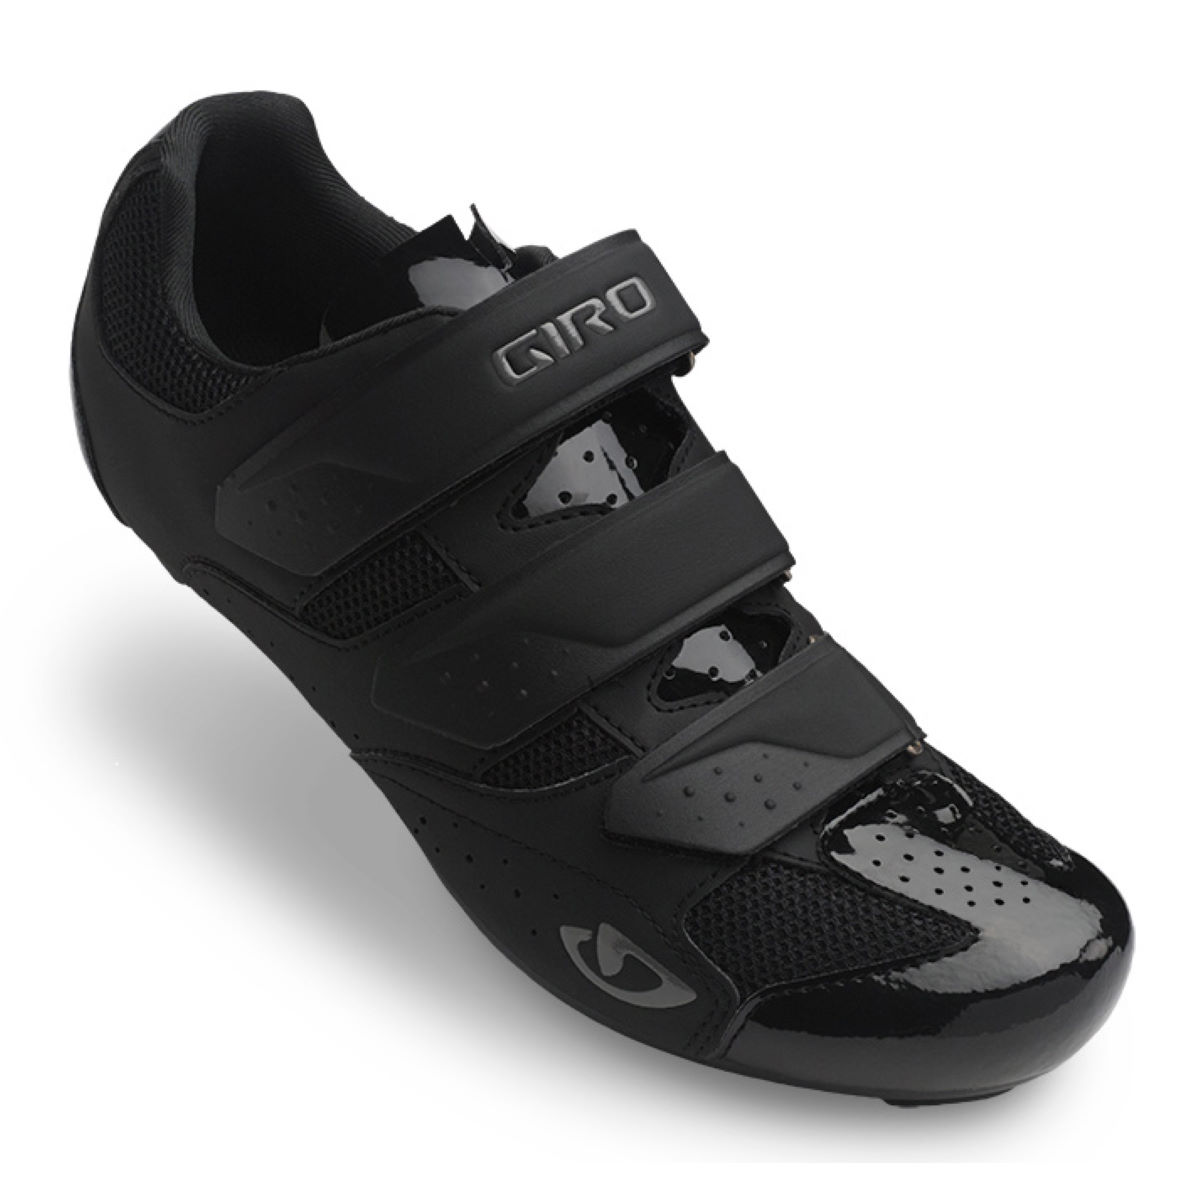 Giro Giro Techne Road Shoe   Cycling Shoes